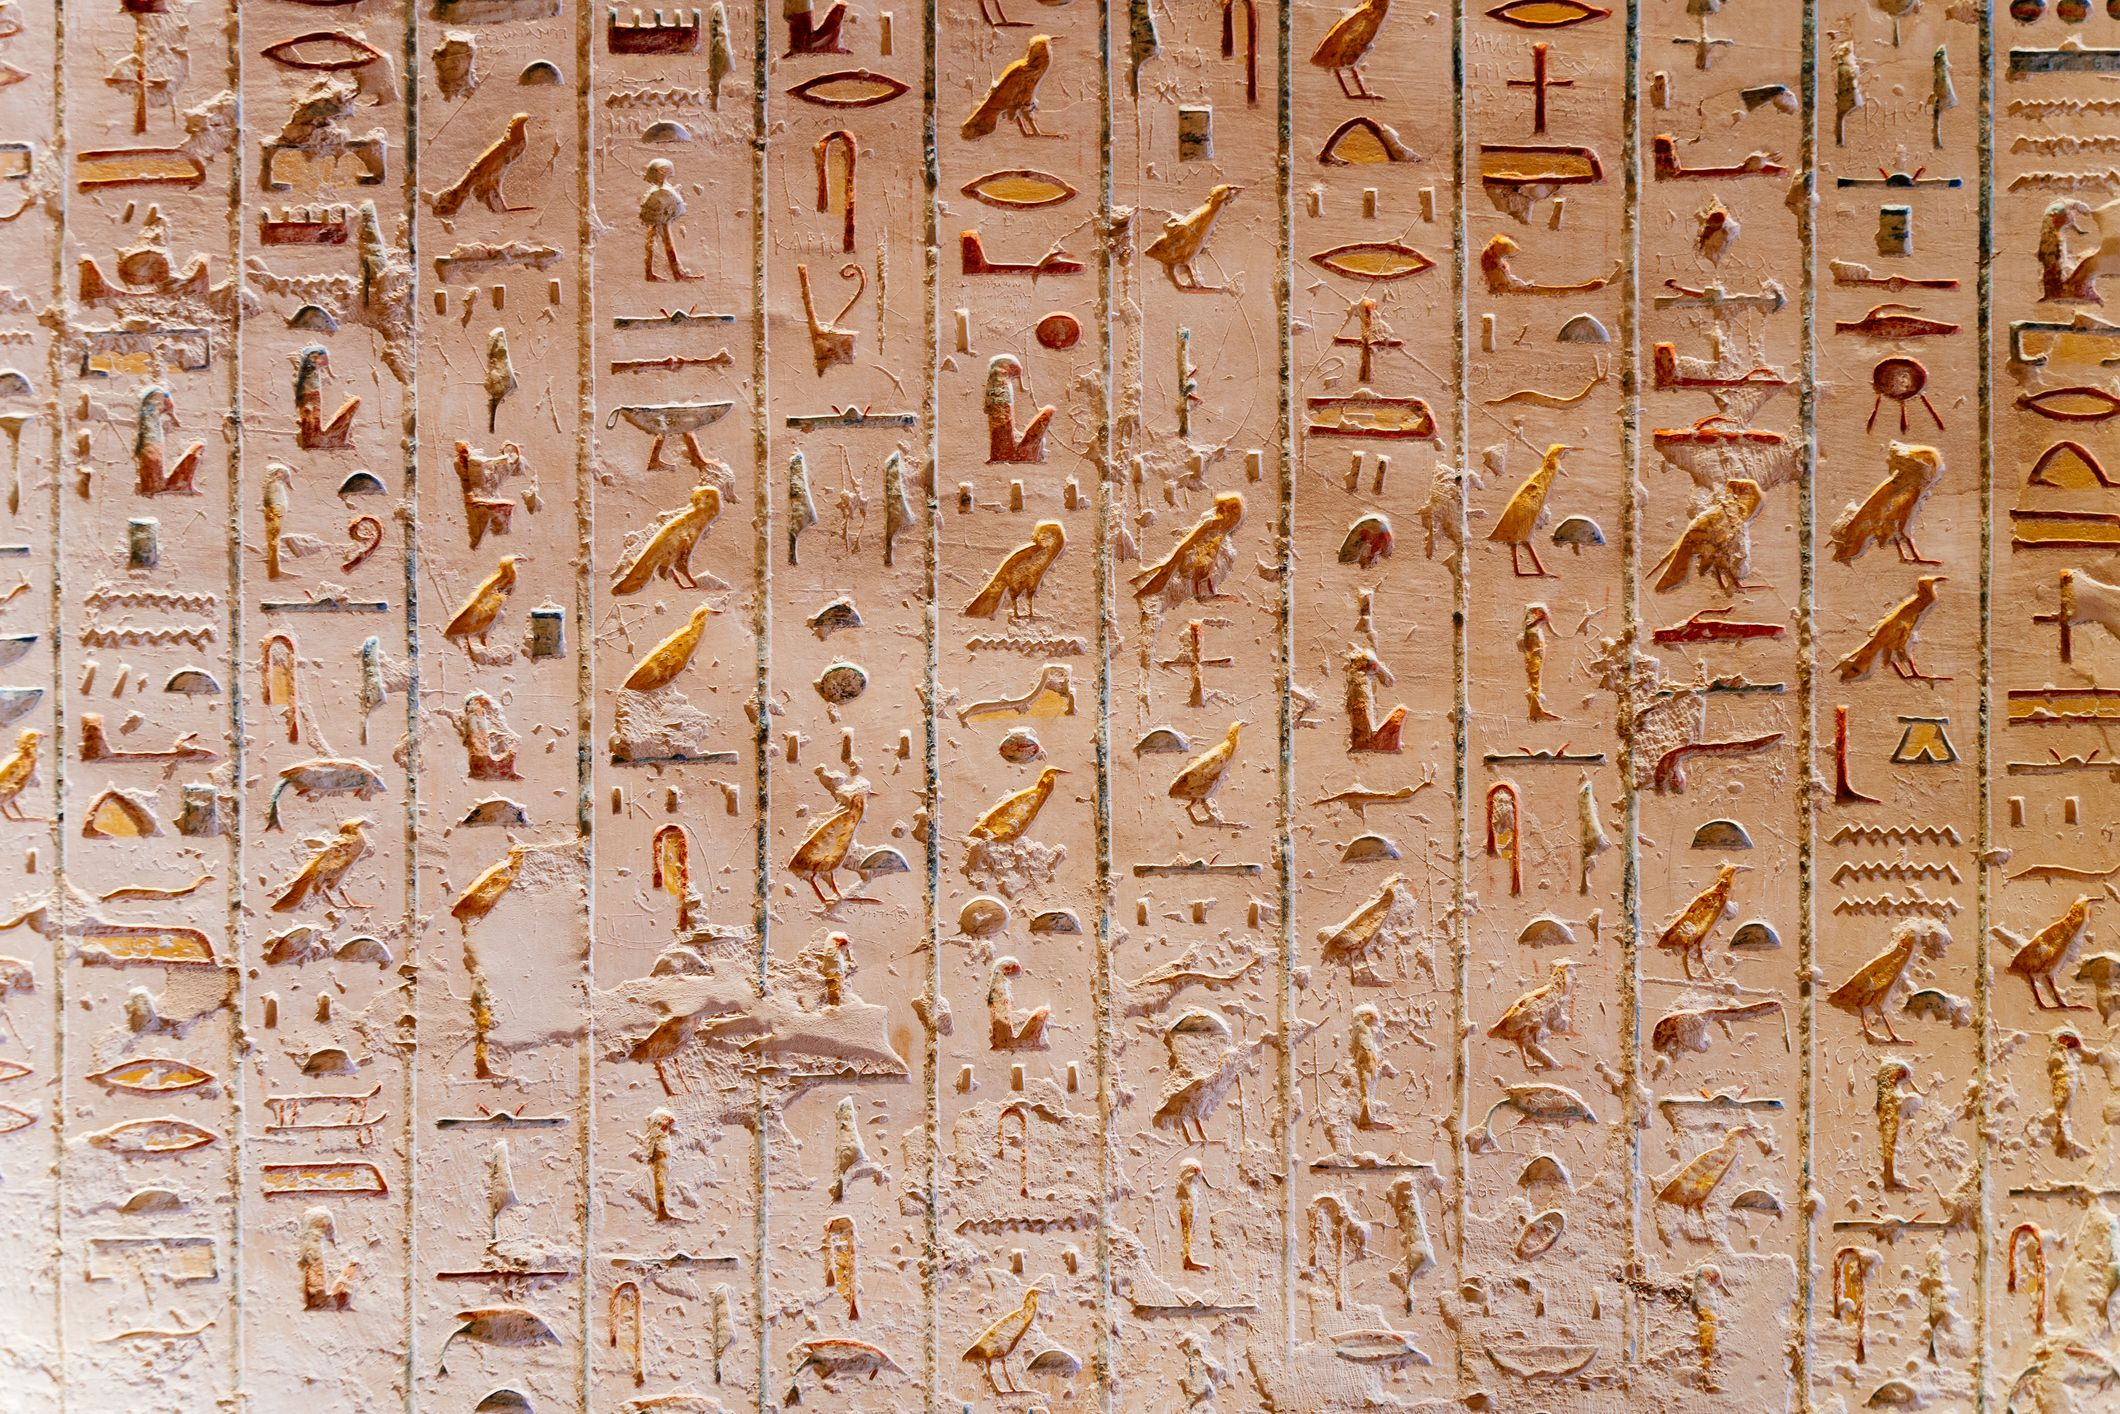 Fun New Way to Annoy Your Friends: Text Them in Hieroglyphics